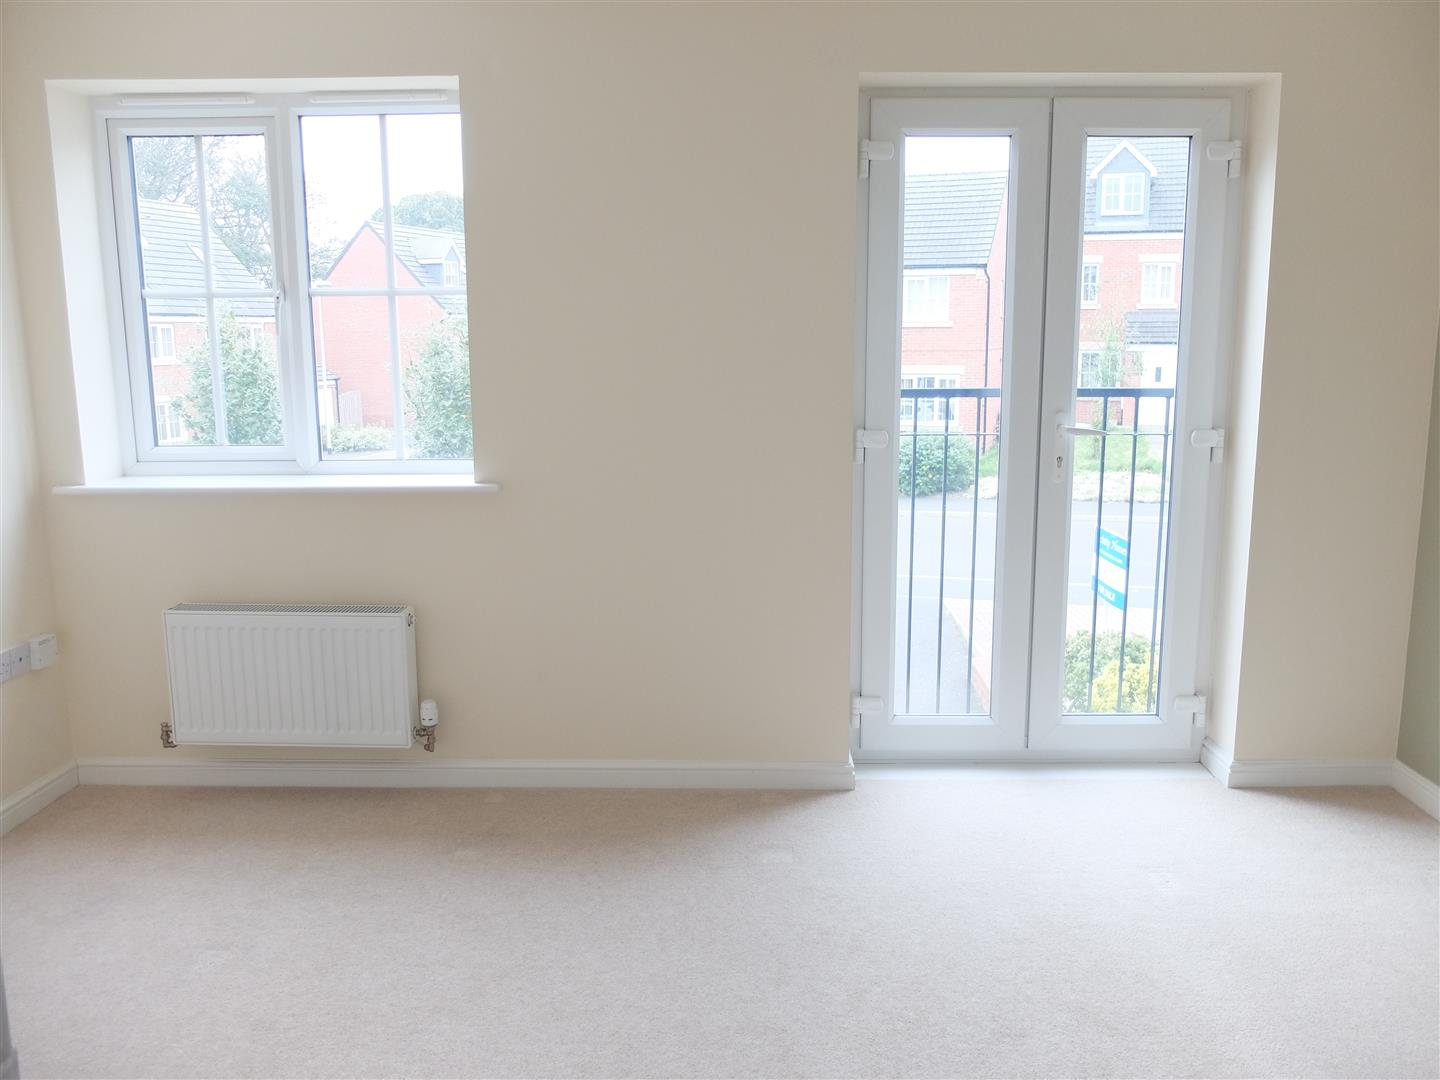 3 Bedrooms House - End Terrace For Sale 9 Barley Edge Carlisle